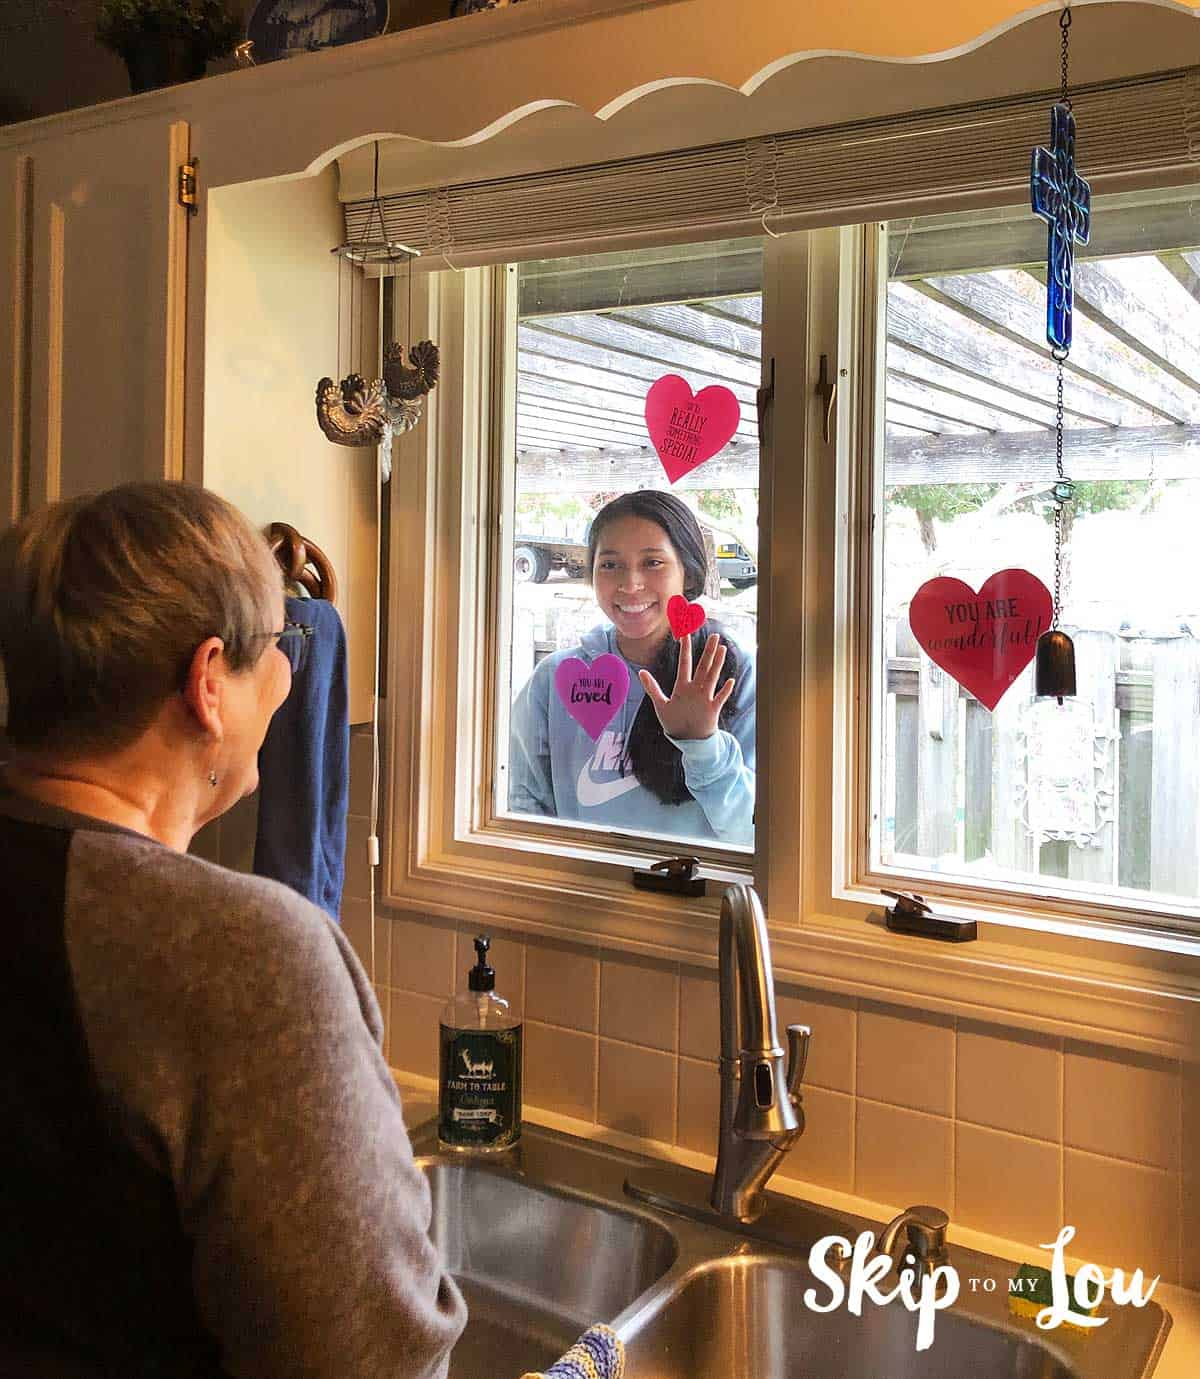 senior looking at child through window with hearts